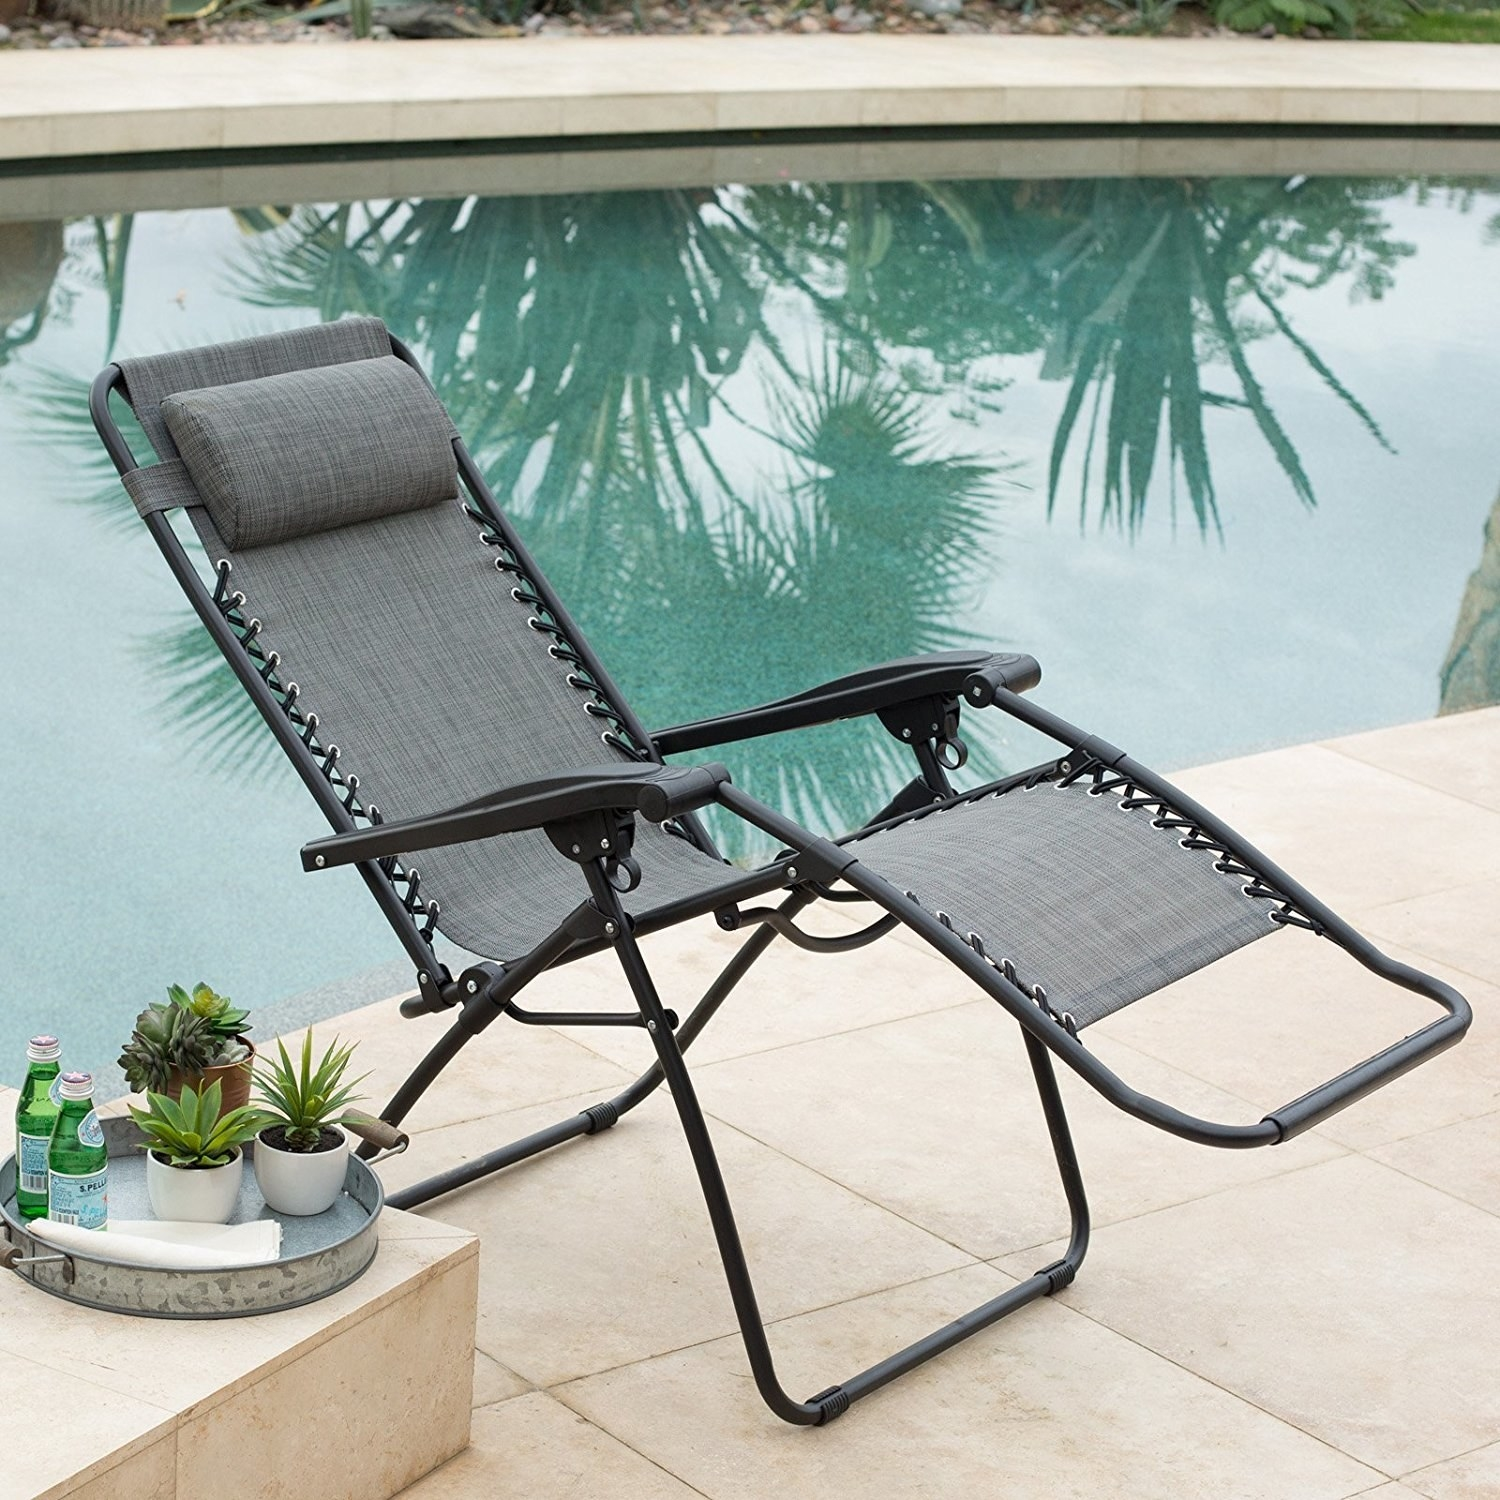 Fold Out Budget Single Guest Z Bed Chair Ideal For Students UK Made Garden Chair